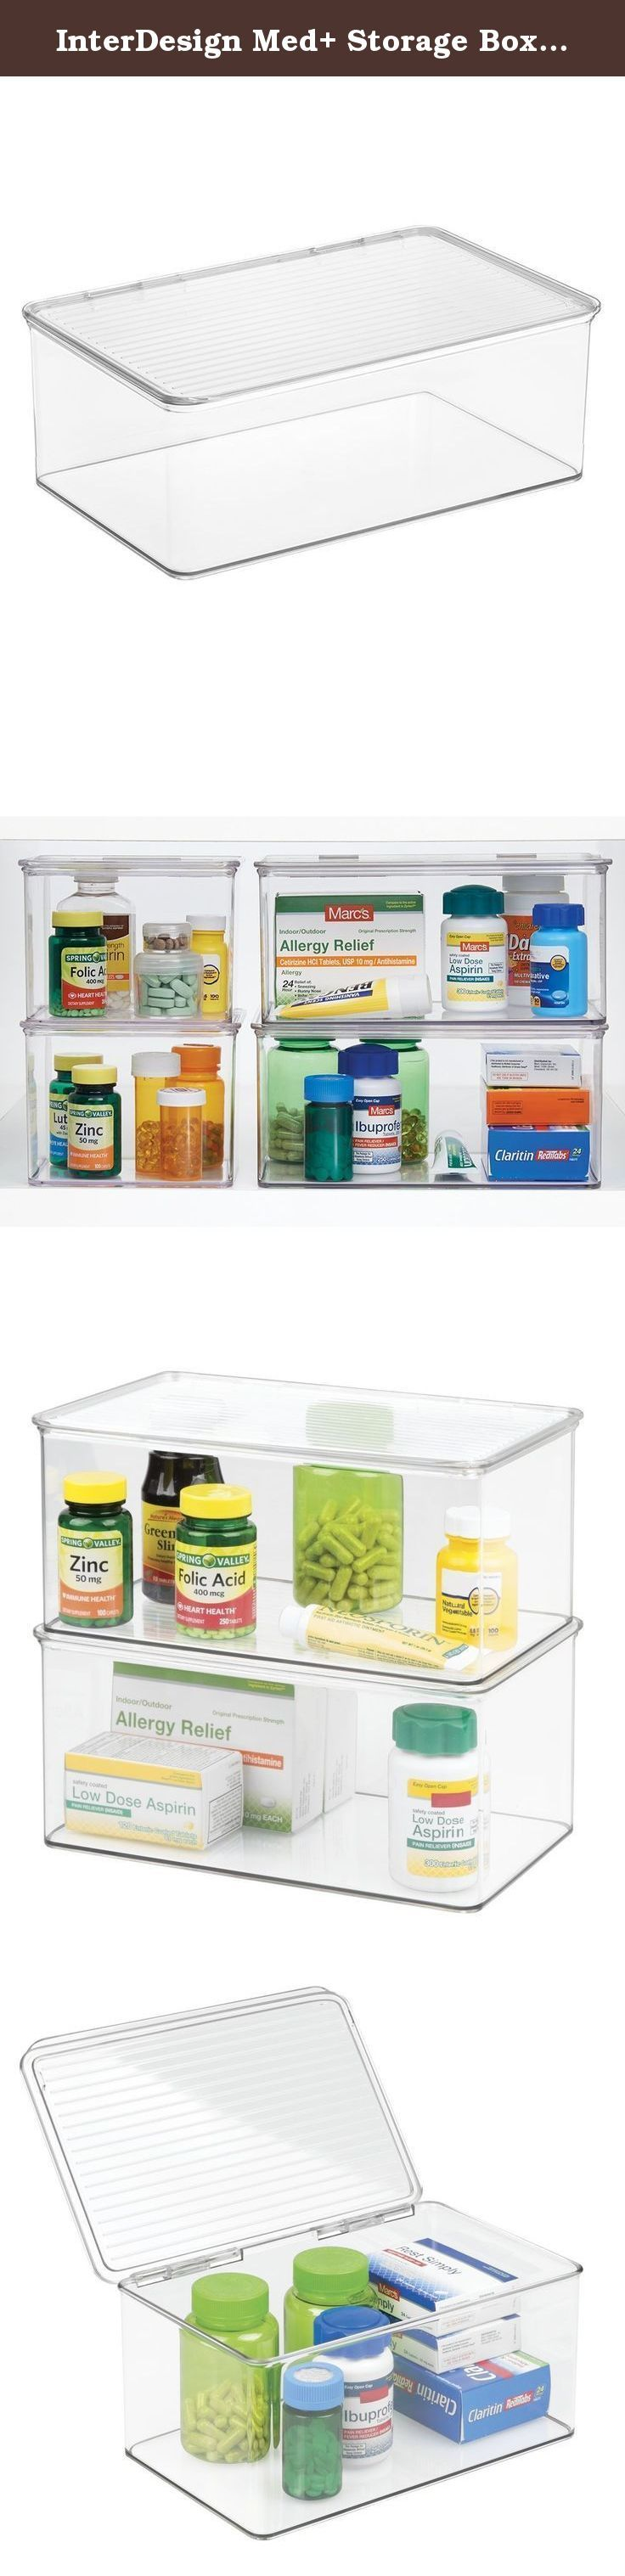 InterDesign Med+ Storage Box Organizer for Vitamins, Medicine, Medical, Dental Supplies - 4.75-Quart, Clear. The InterDesign Med+ Medicine and Vanity Storage Box is great for medicine storage, first-aid kits, makeup, vitamin storage and more! The hinged lid assures contents are safe and easily accessible. Boxes stack for organization.